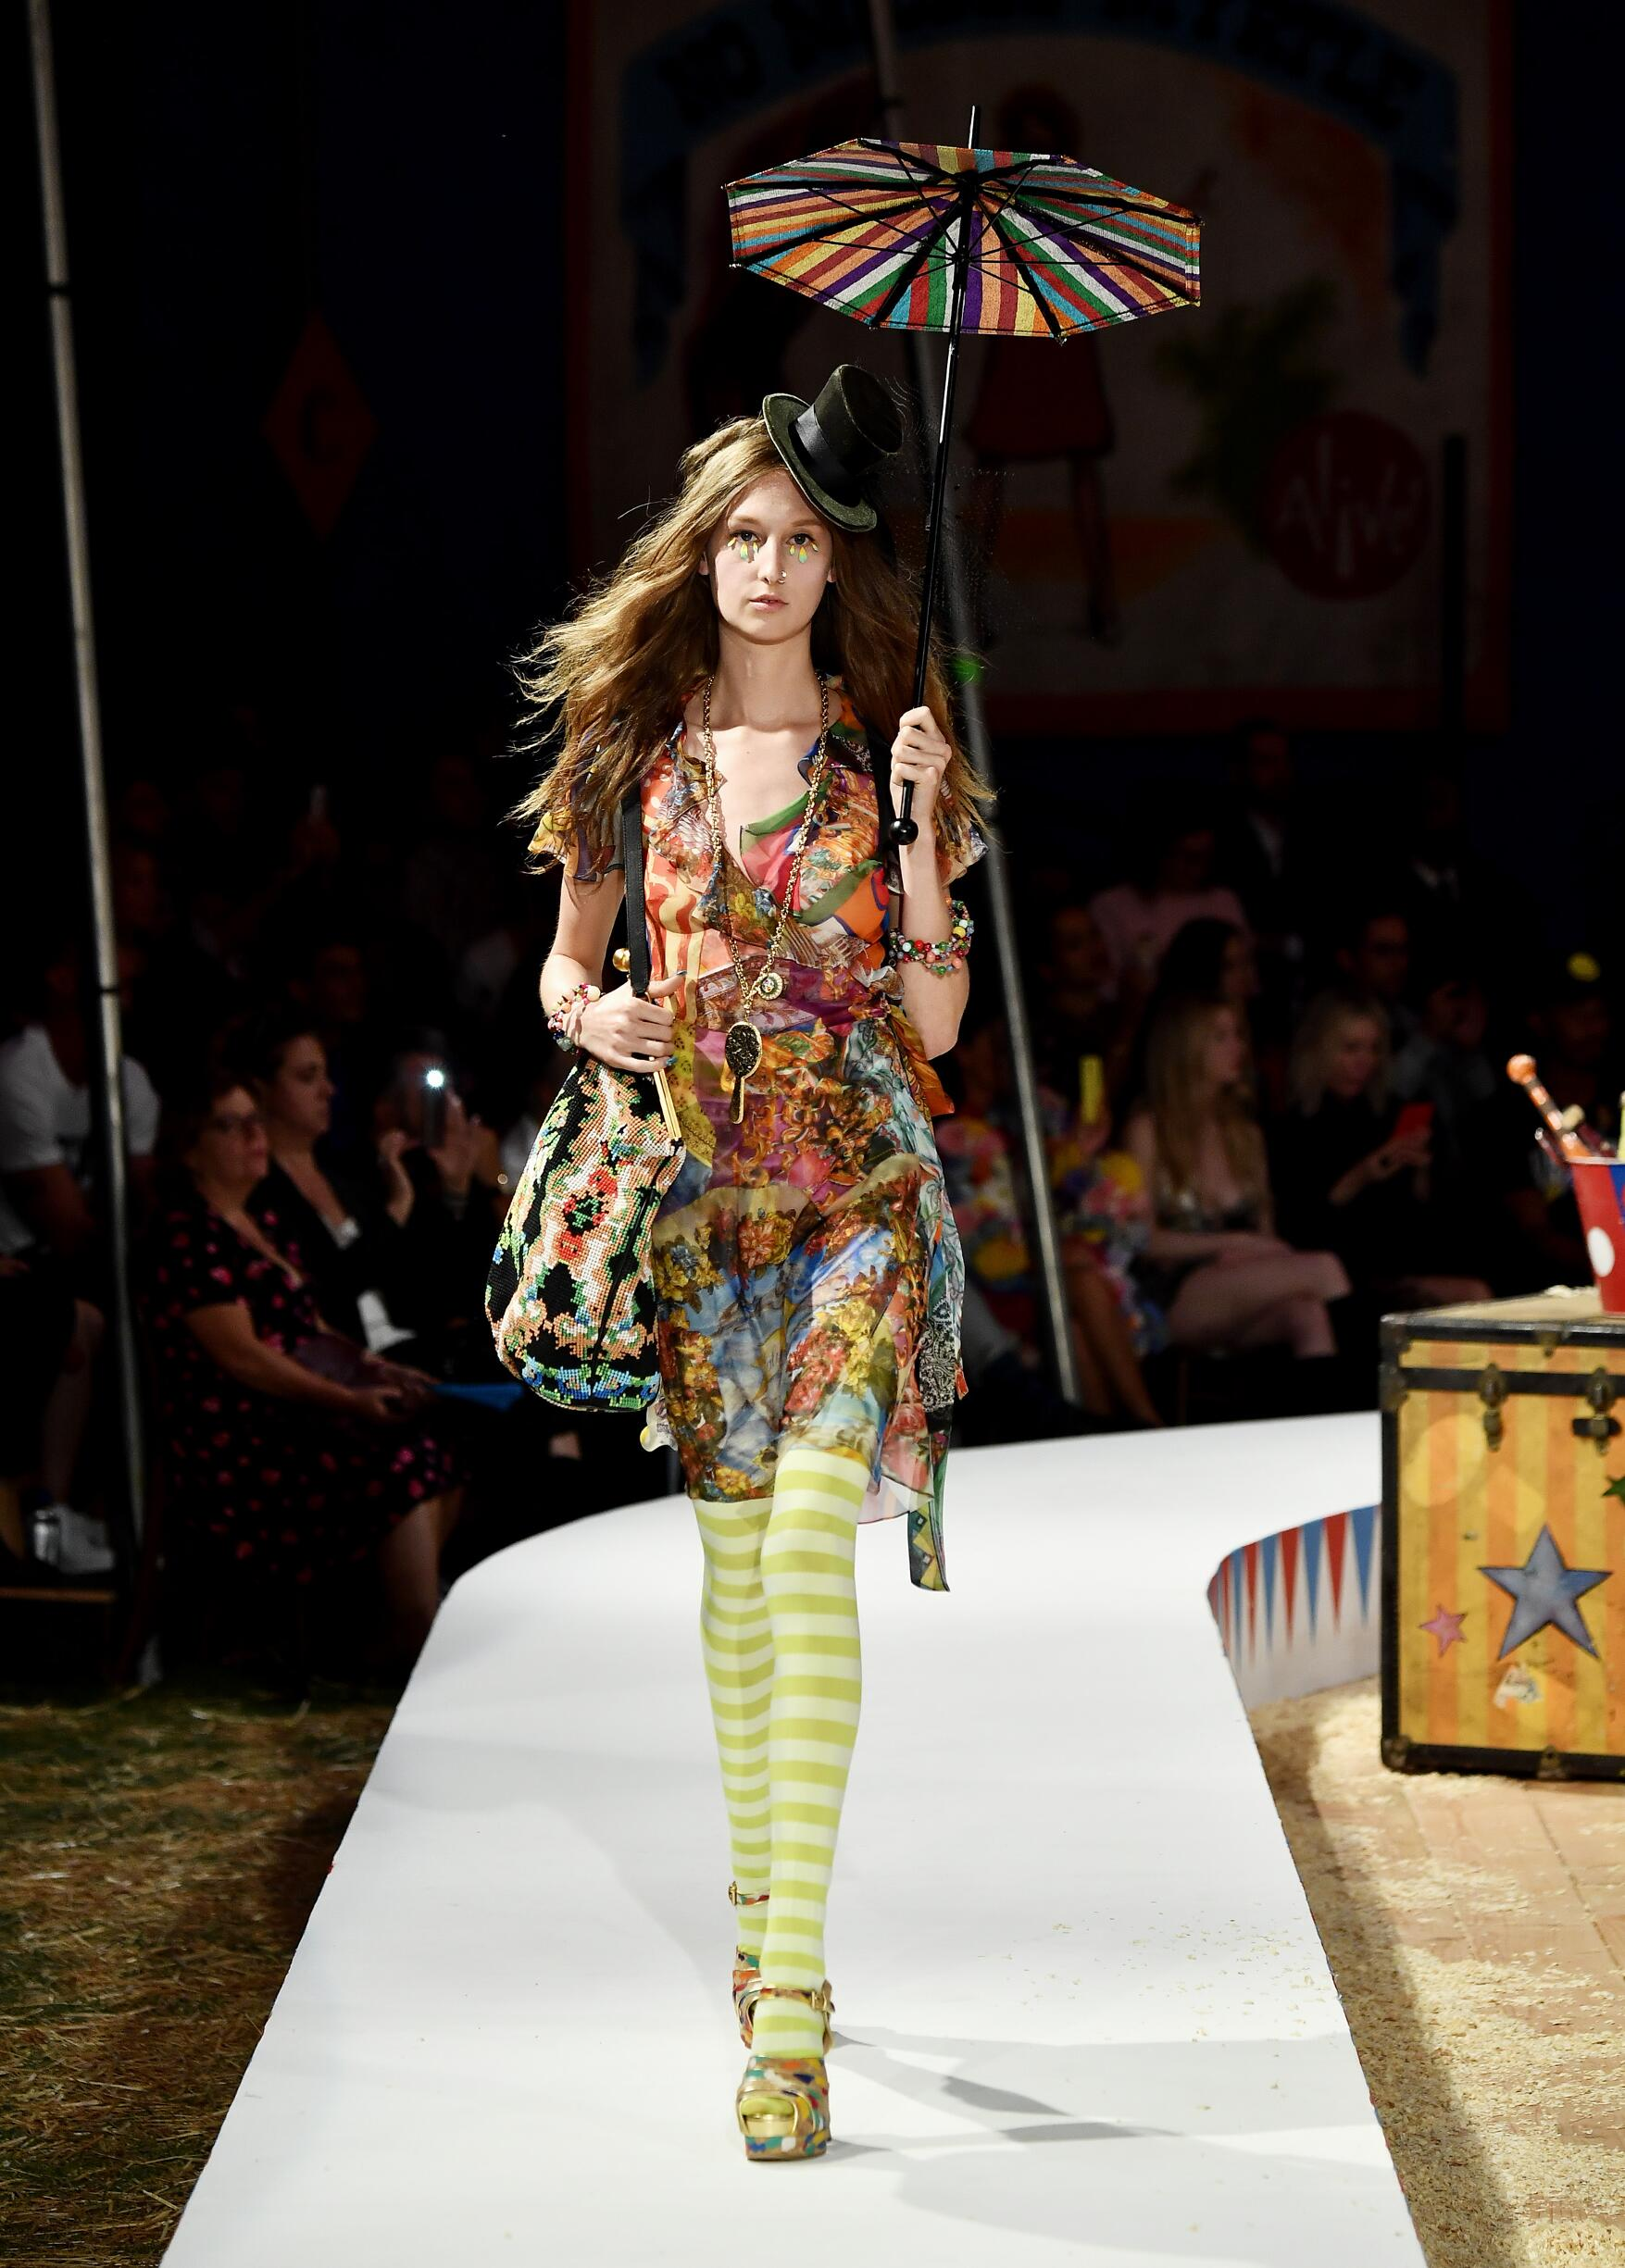 Moschino Spring Summer 2019 Menswear and Women's Resort Collection Look 68 Los Angeles